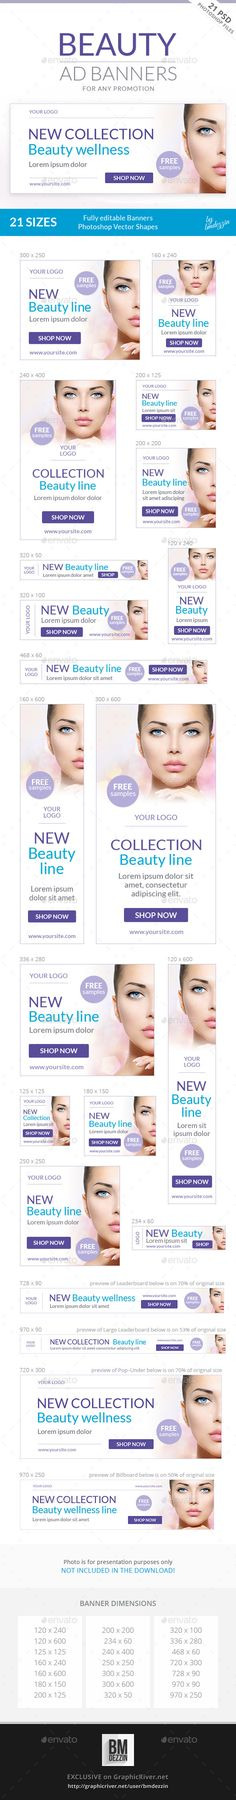 Beauty Ad Banners Template PSD | Buy and Download: http://graphicriver.net/item/beauty-ad-banners/9639015?WT.oss_phrase=banner&WT.oss_rank=3&WT.z_author=bmdezzin&WT.ac=search_thumb&ref=ksioks